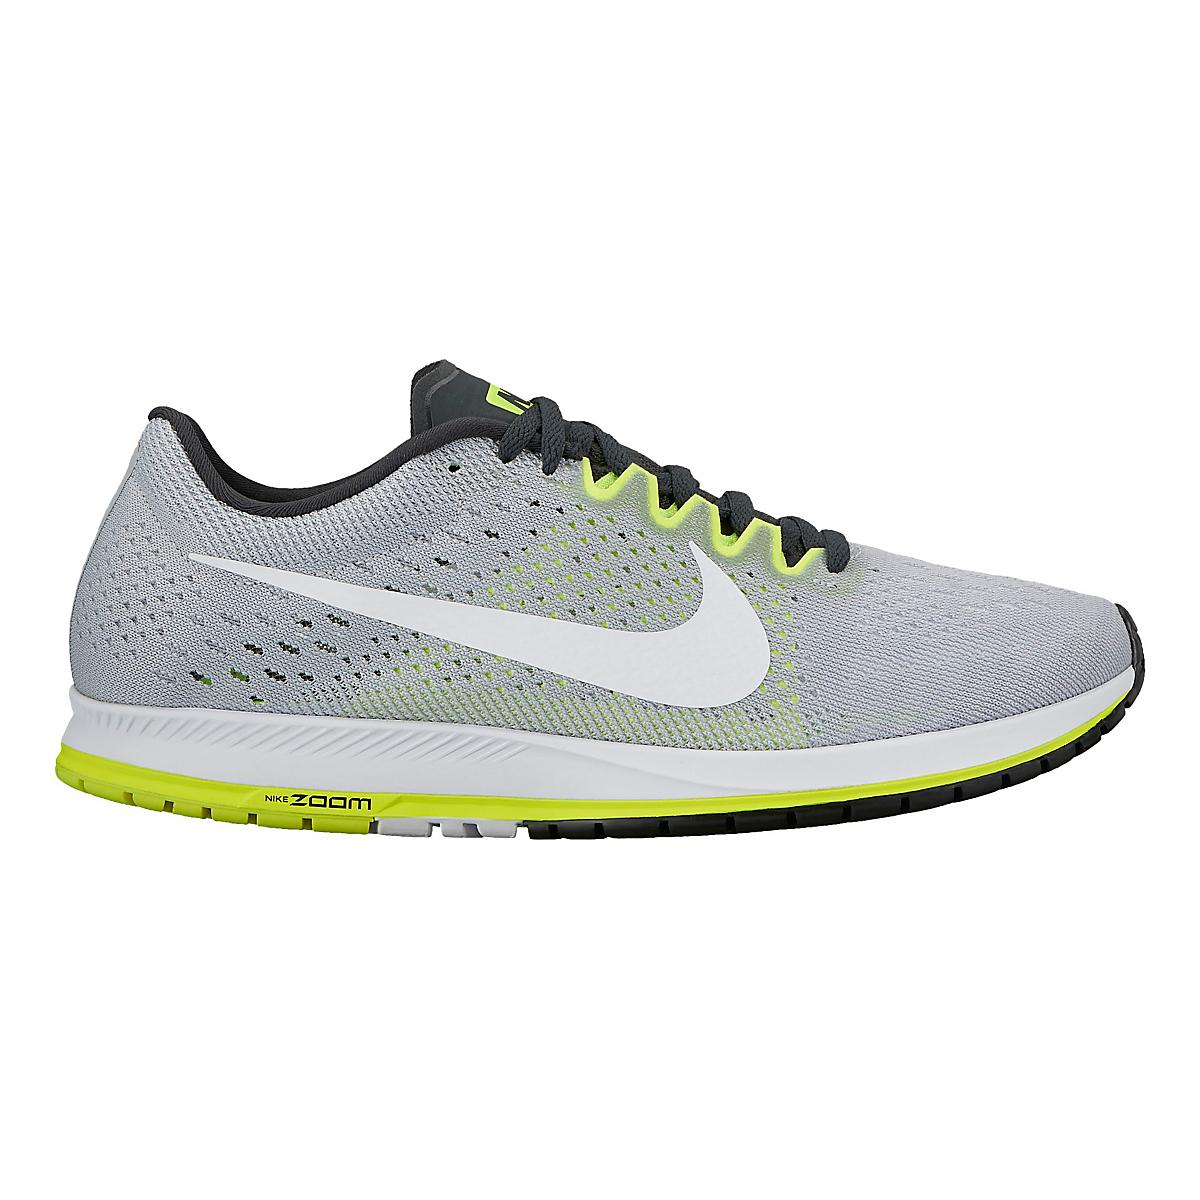 Nike Zoom Streak 6 Unisex Racing Shoe from Road Runner Sports 8b6e52dd3